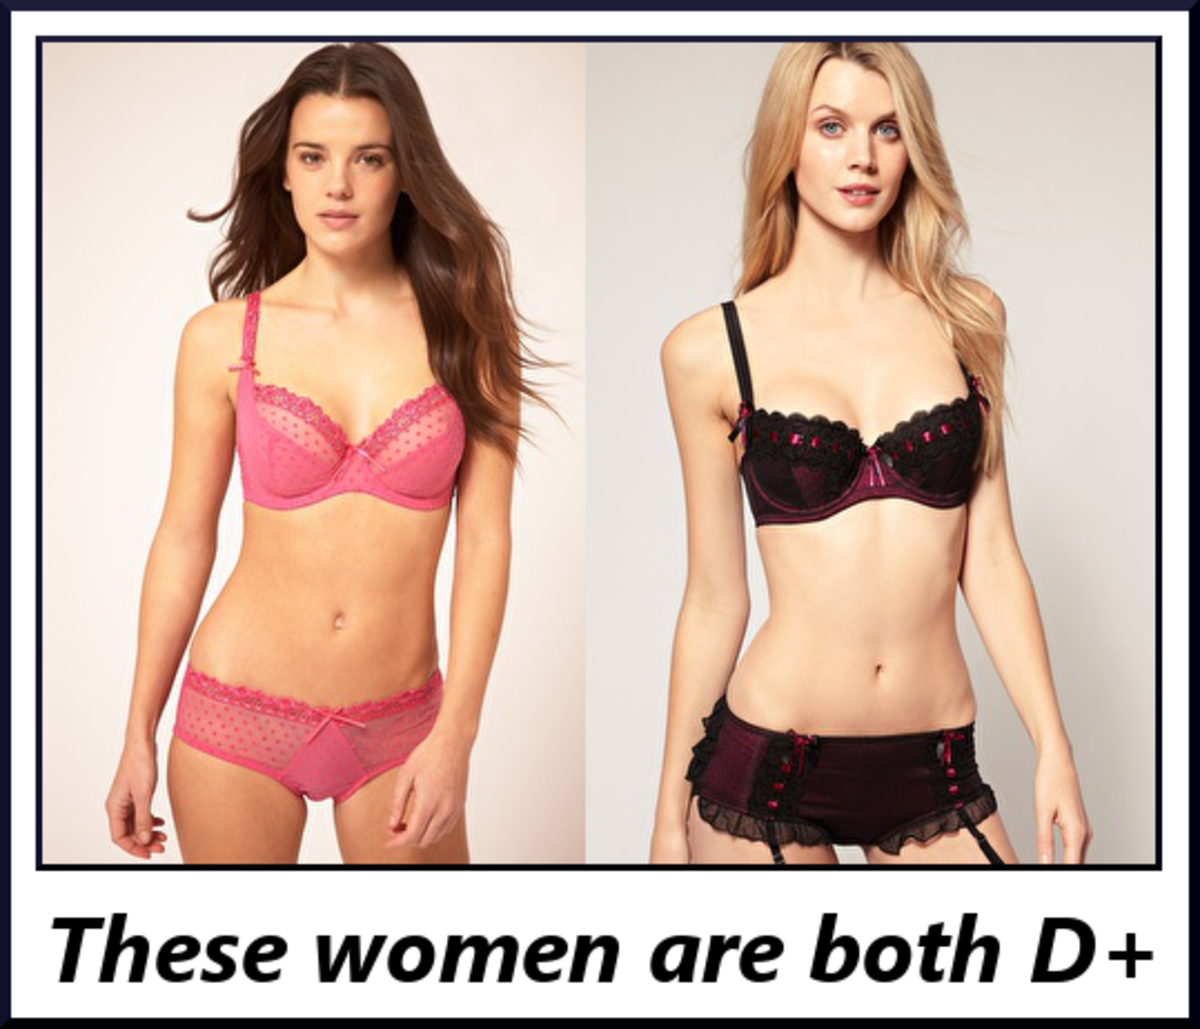 The differences between these women's underbust measurements (band size) and bust measurements are about 5 inches, which puts them in a DD cup.